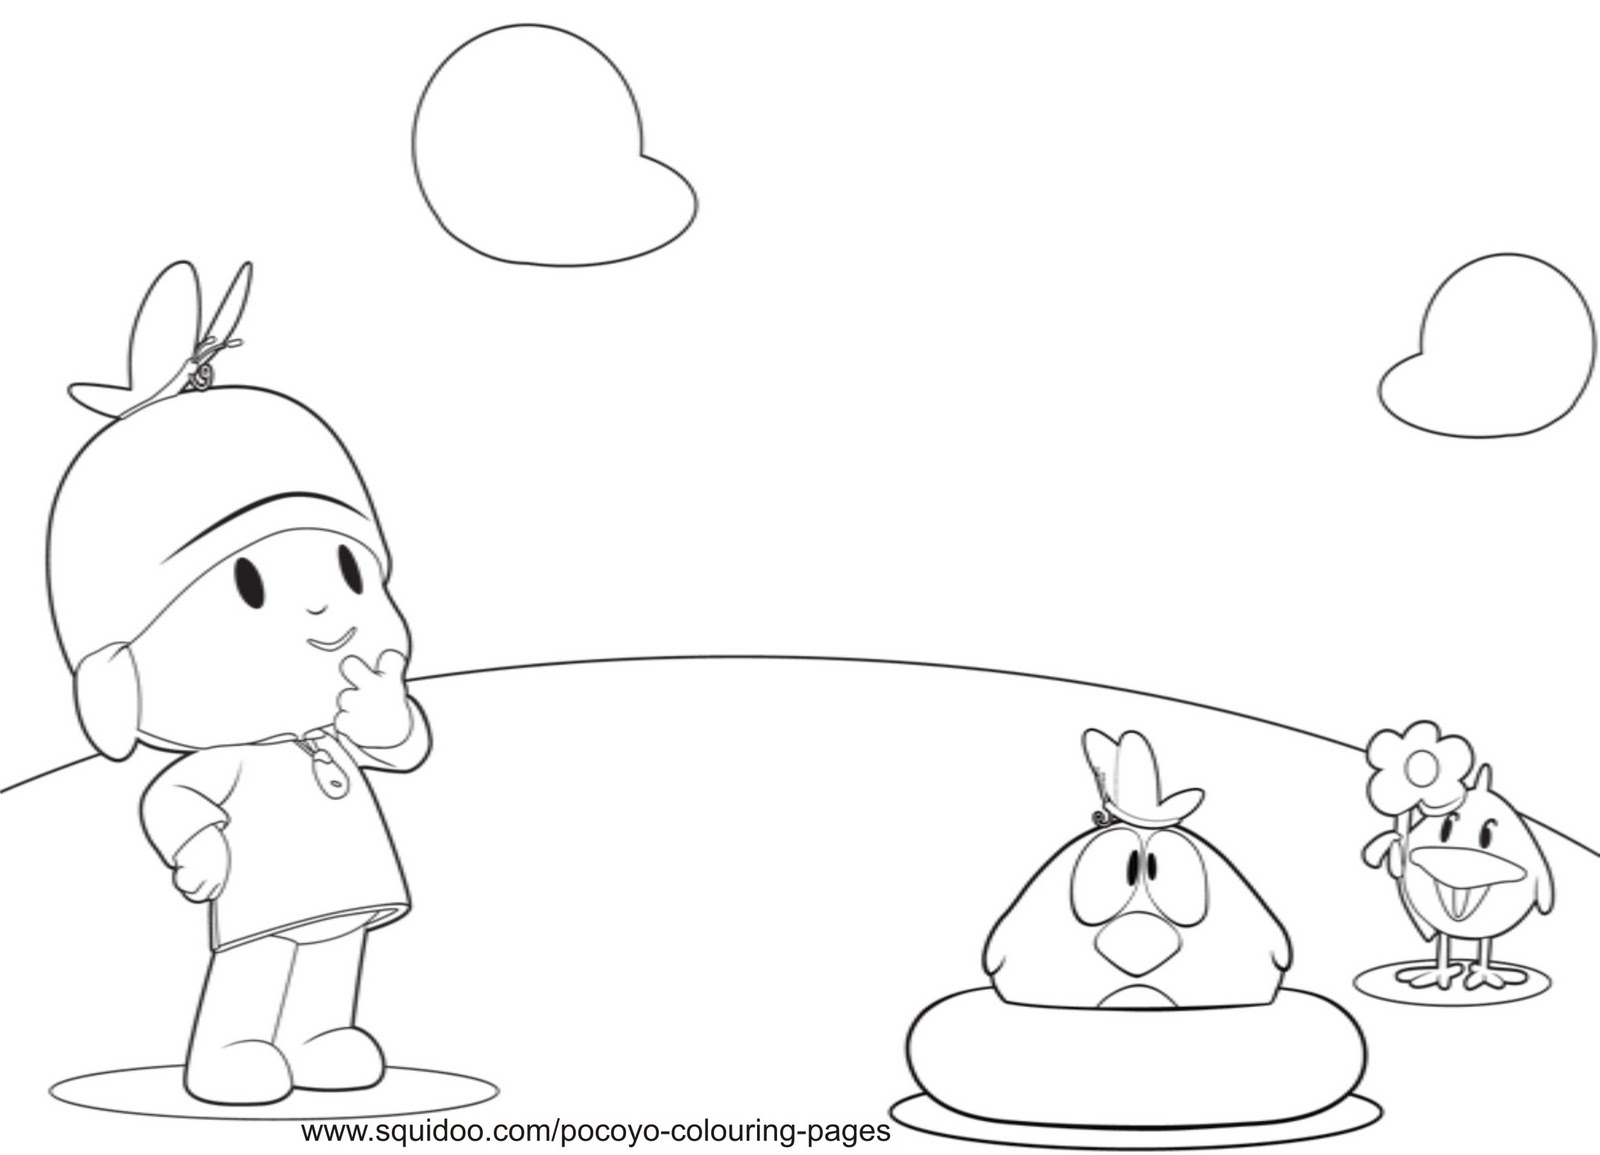 Pocoyo and friends coloring pages ~ Pocoyo Coloring Pages ~ Free Printable Coloring Pages ...